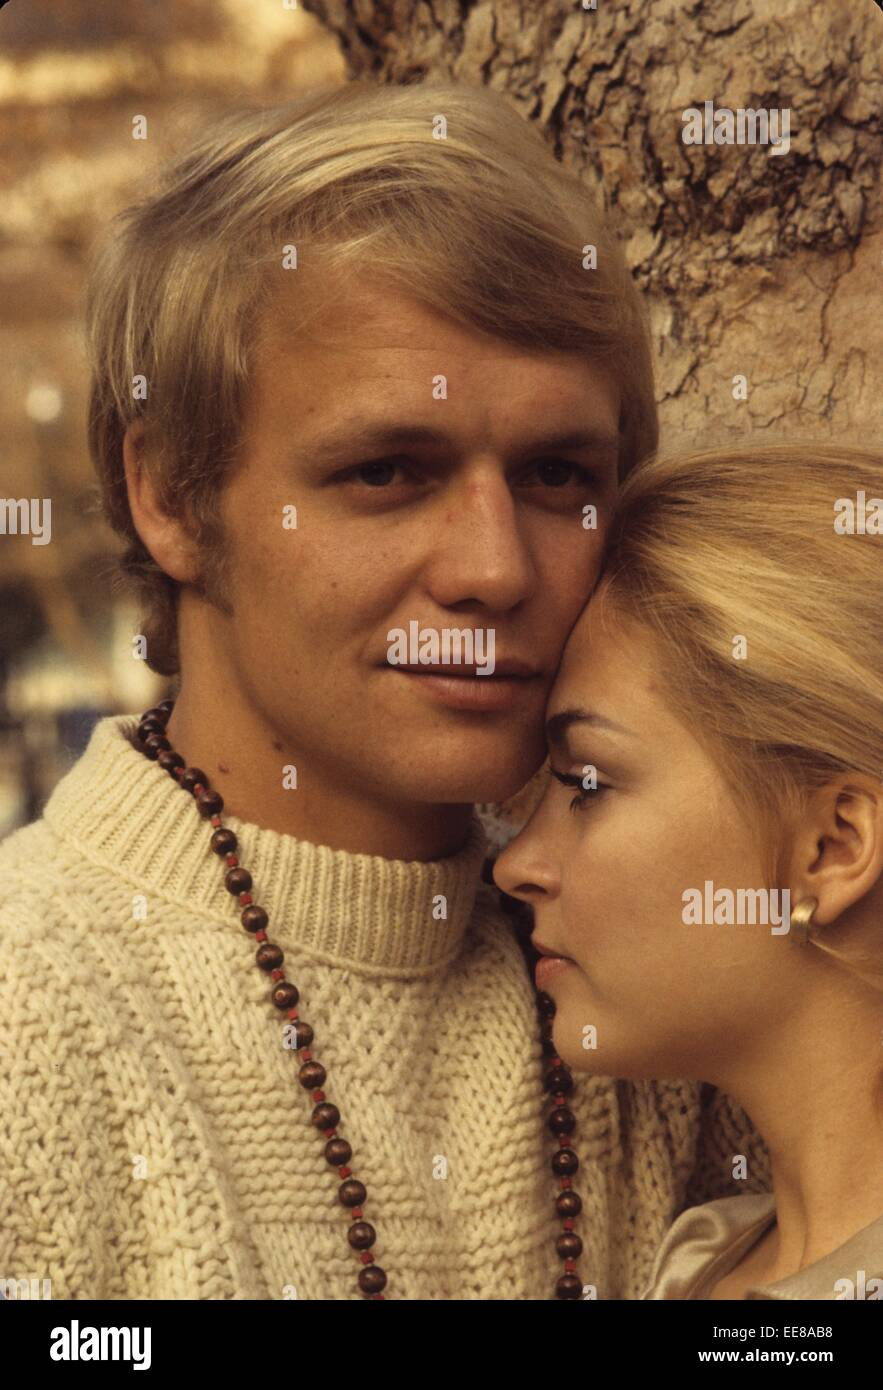 DL1Step1 moreover 010 M84 FS 2253015 together with P52191 in addition P716 moreover Stock Photo David Soul 1969w226 With Karen Soul Henry Foxglobe Photoszuma Wirealamy 77630428. on html shopping cart